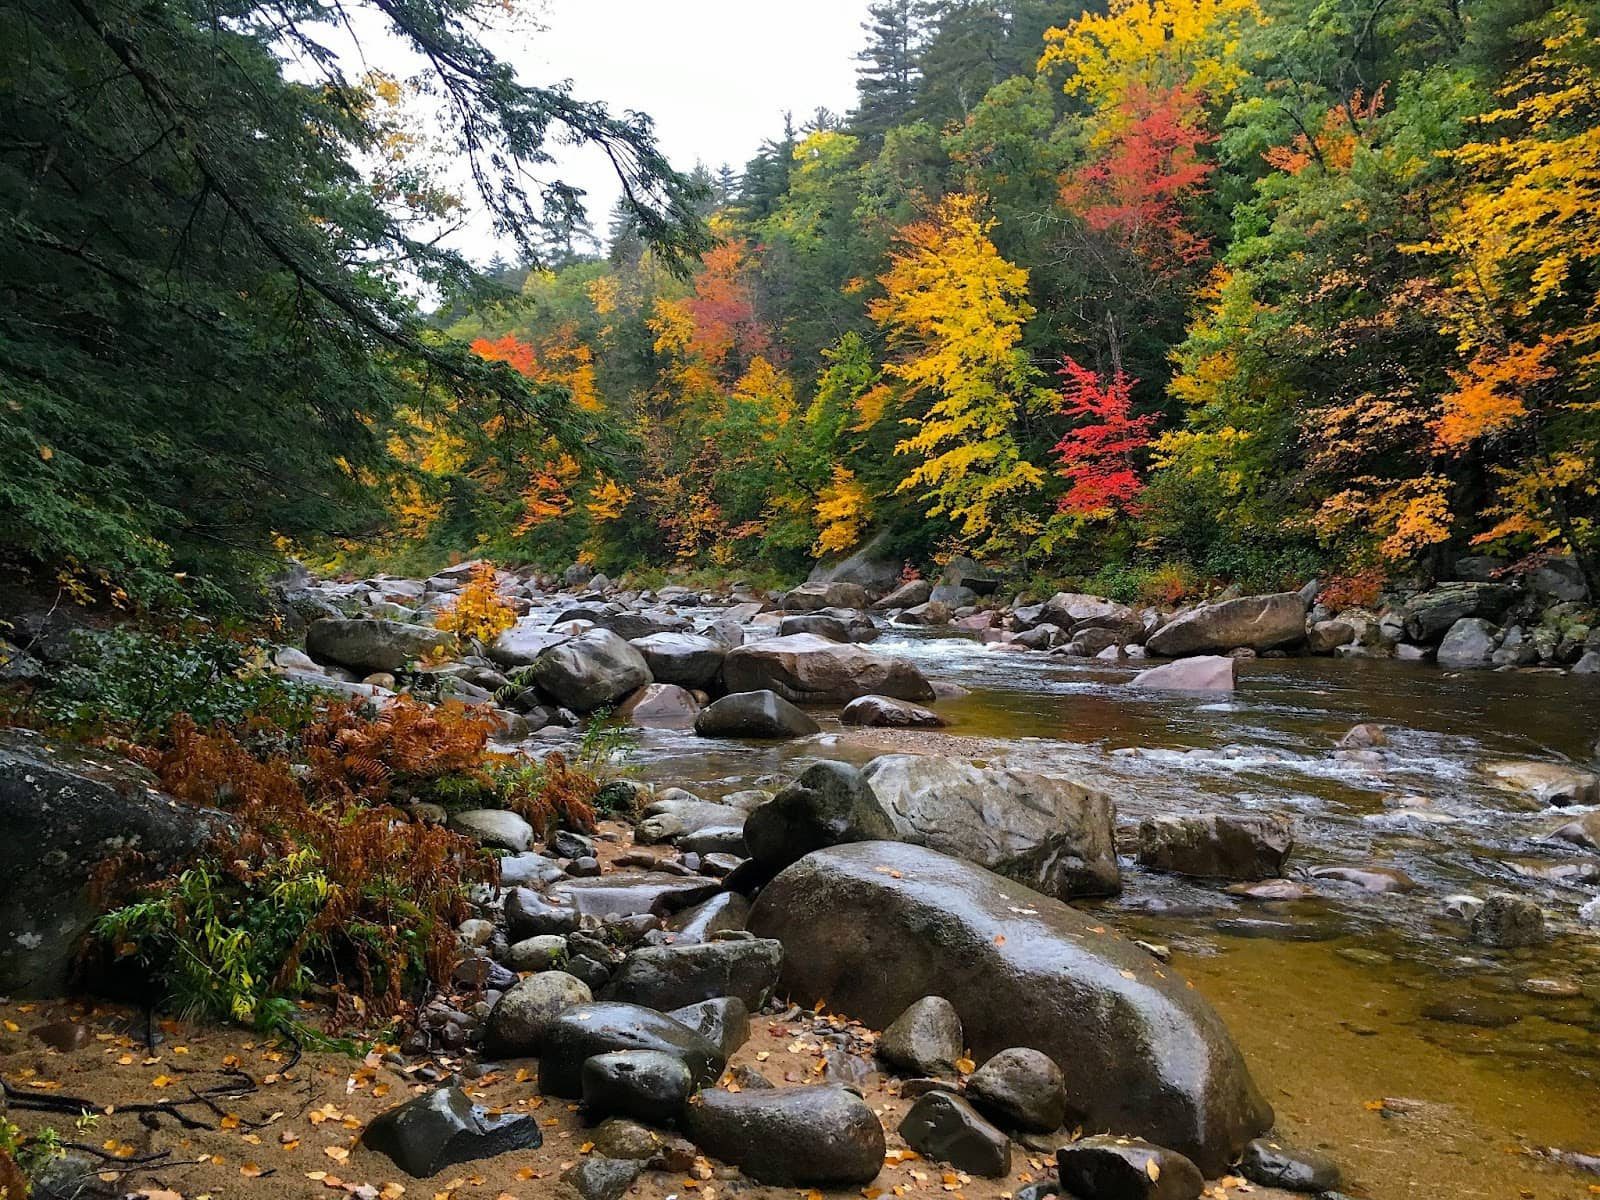 A river in New England with fall foliage.